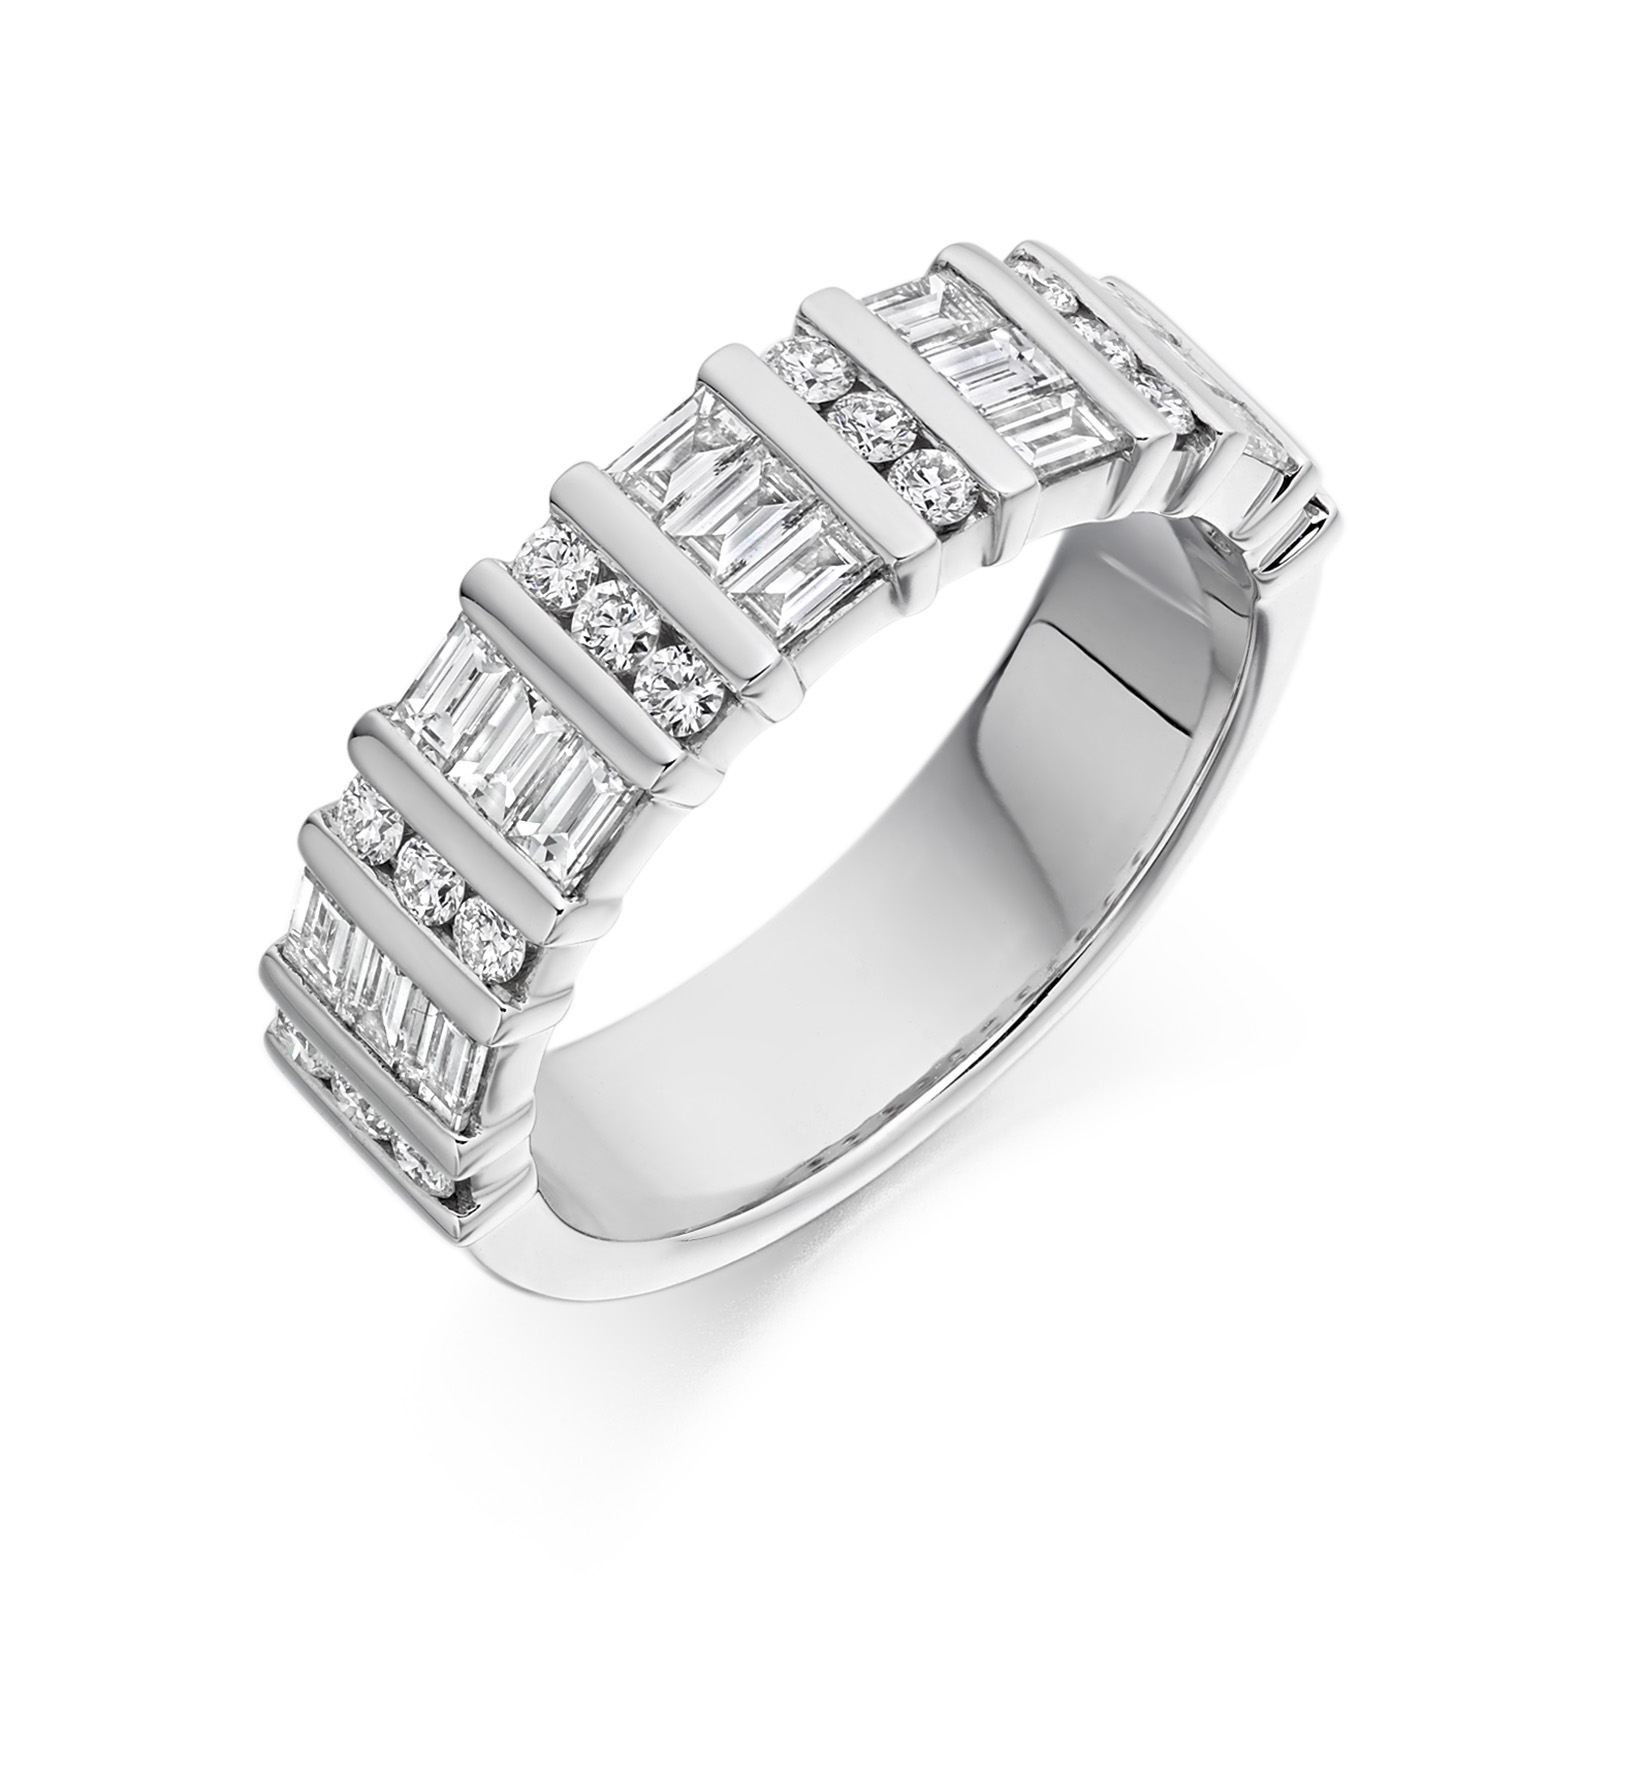 1.25ct Mixed Cut Eternity Ring